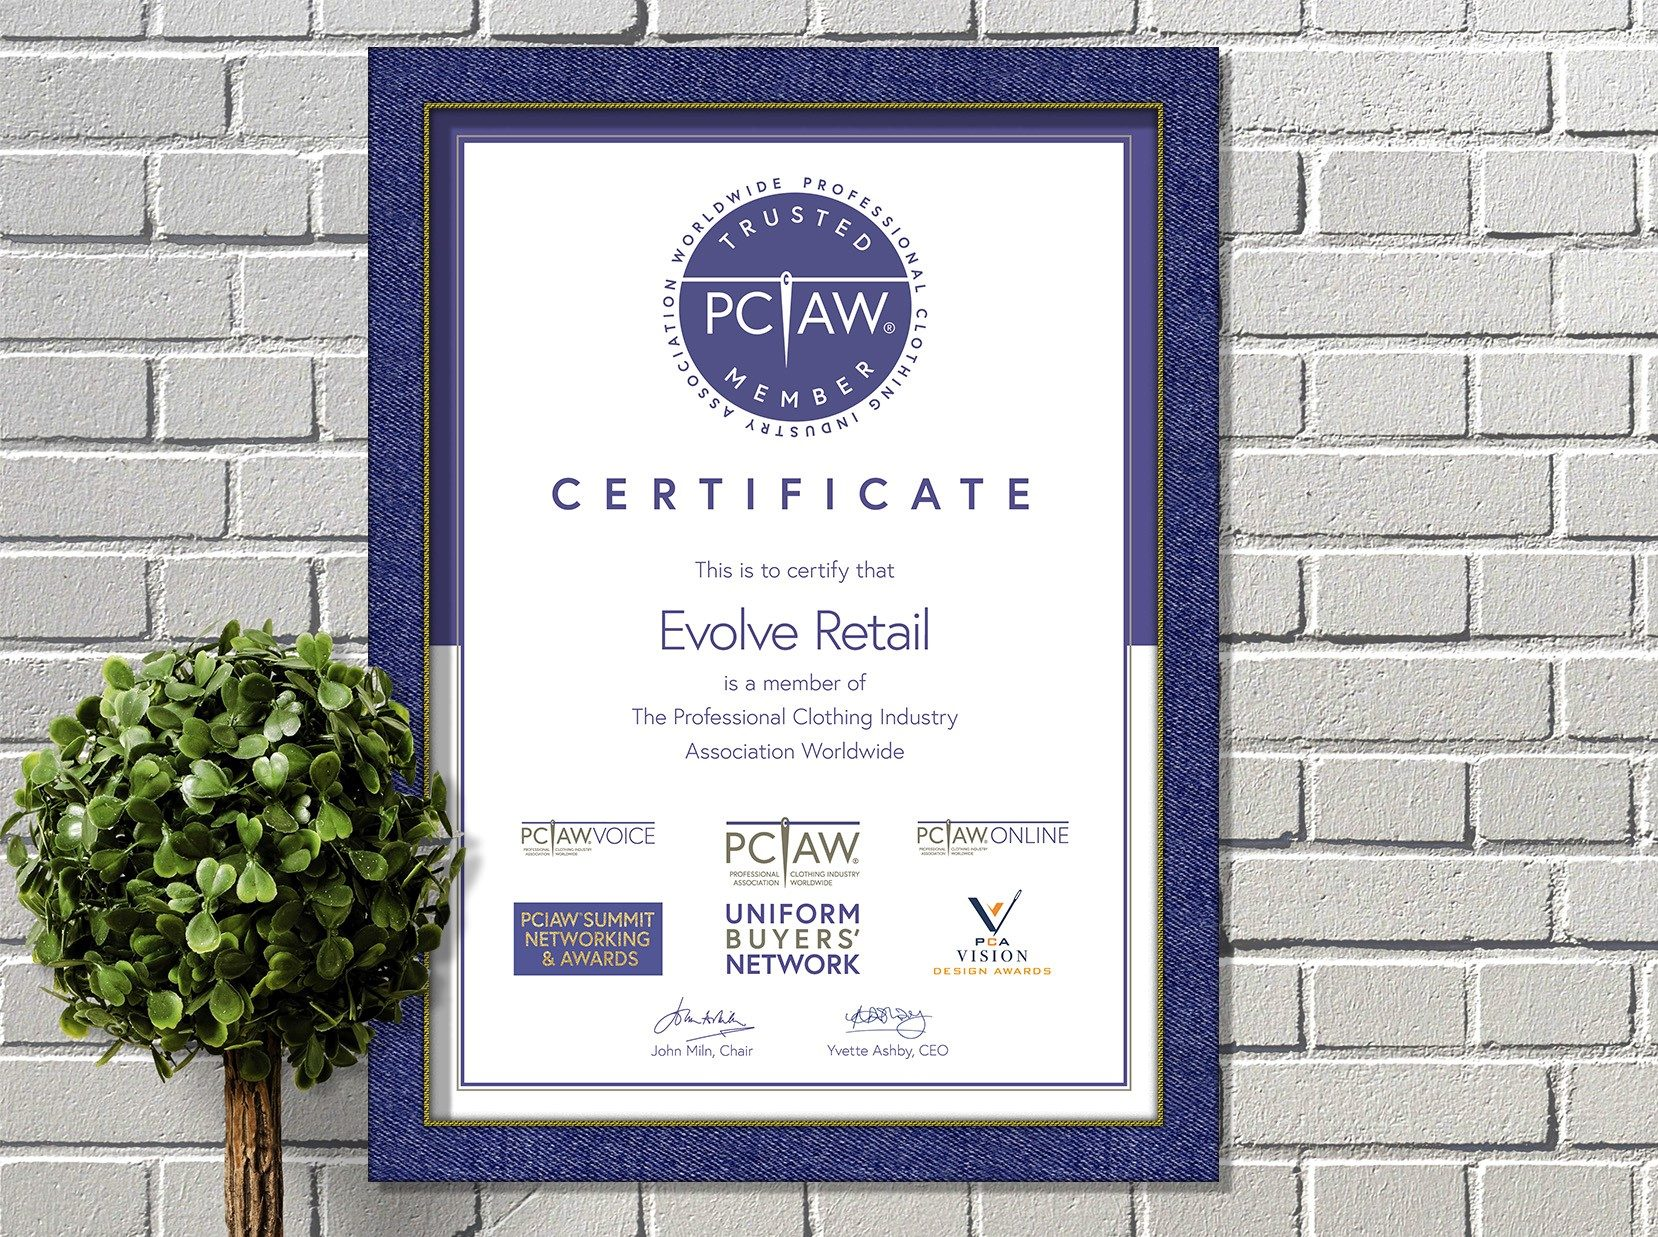 The PCIAW® is proud to have Evolve Retail, the eCommerce web development specialist, as a PCIAW® Trusted Member